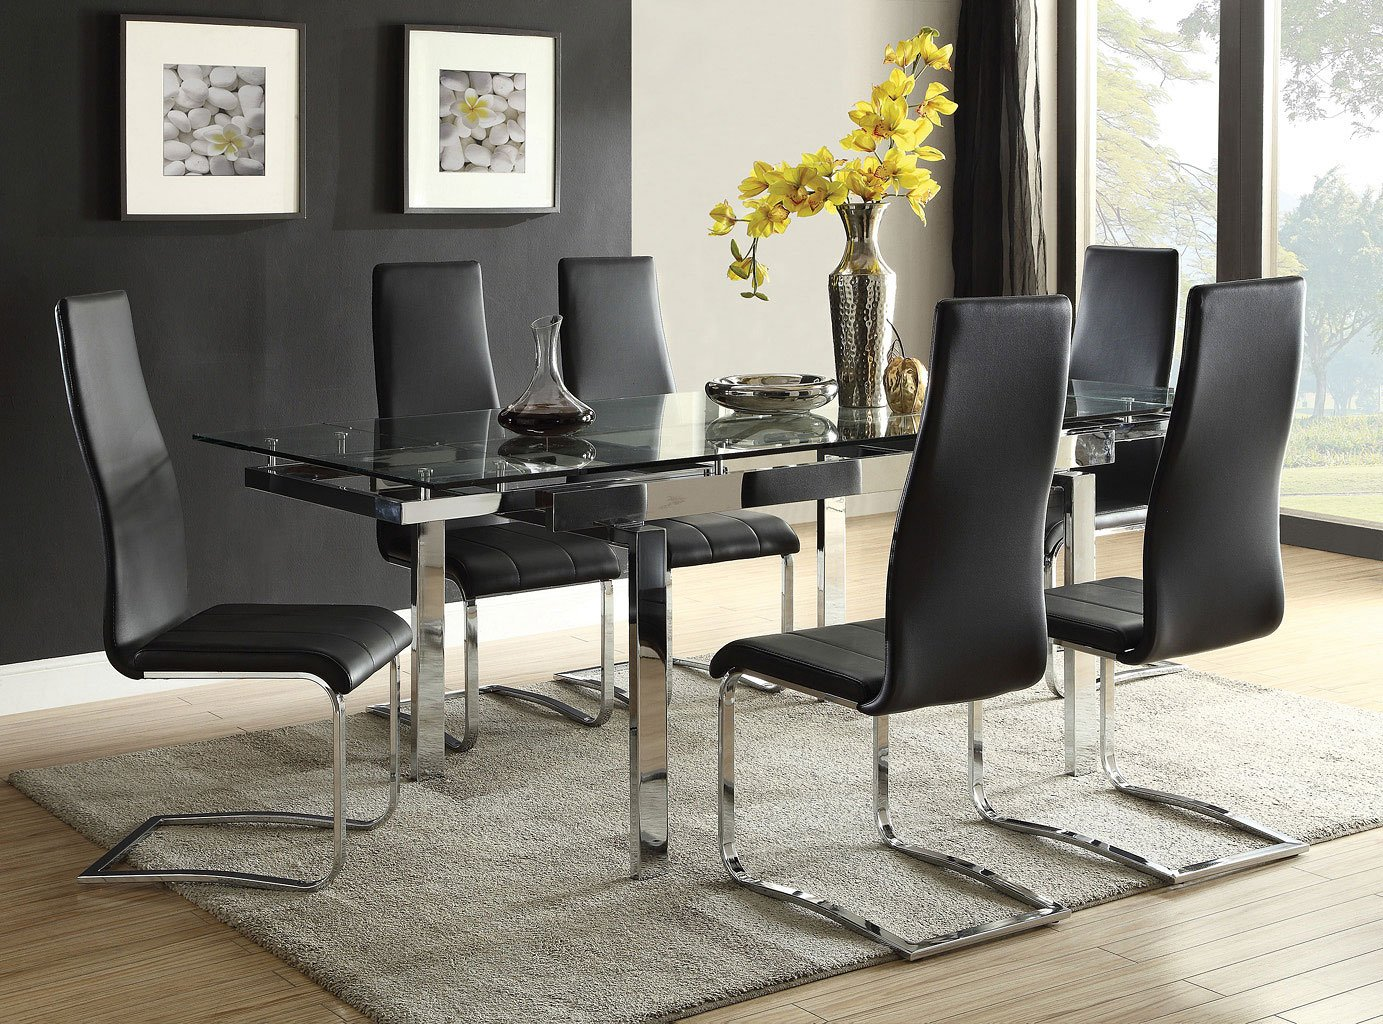 Wexford Rectangular Dining Set W/ Black Chairs